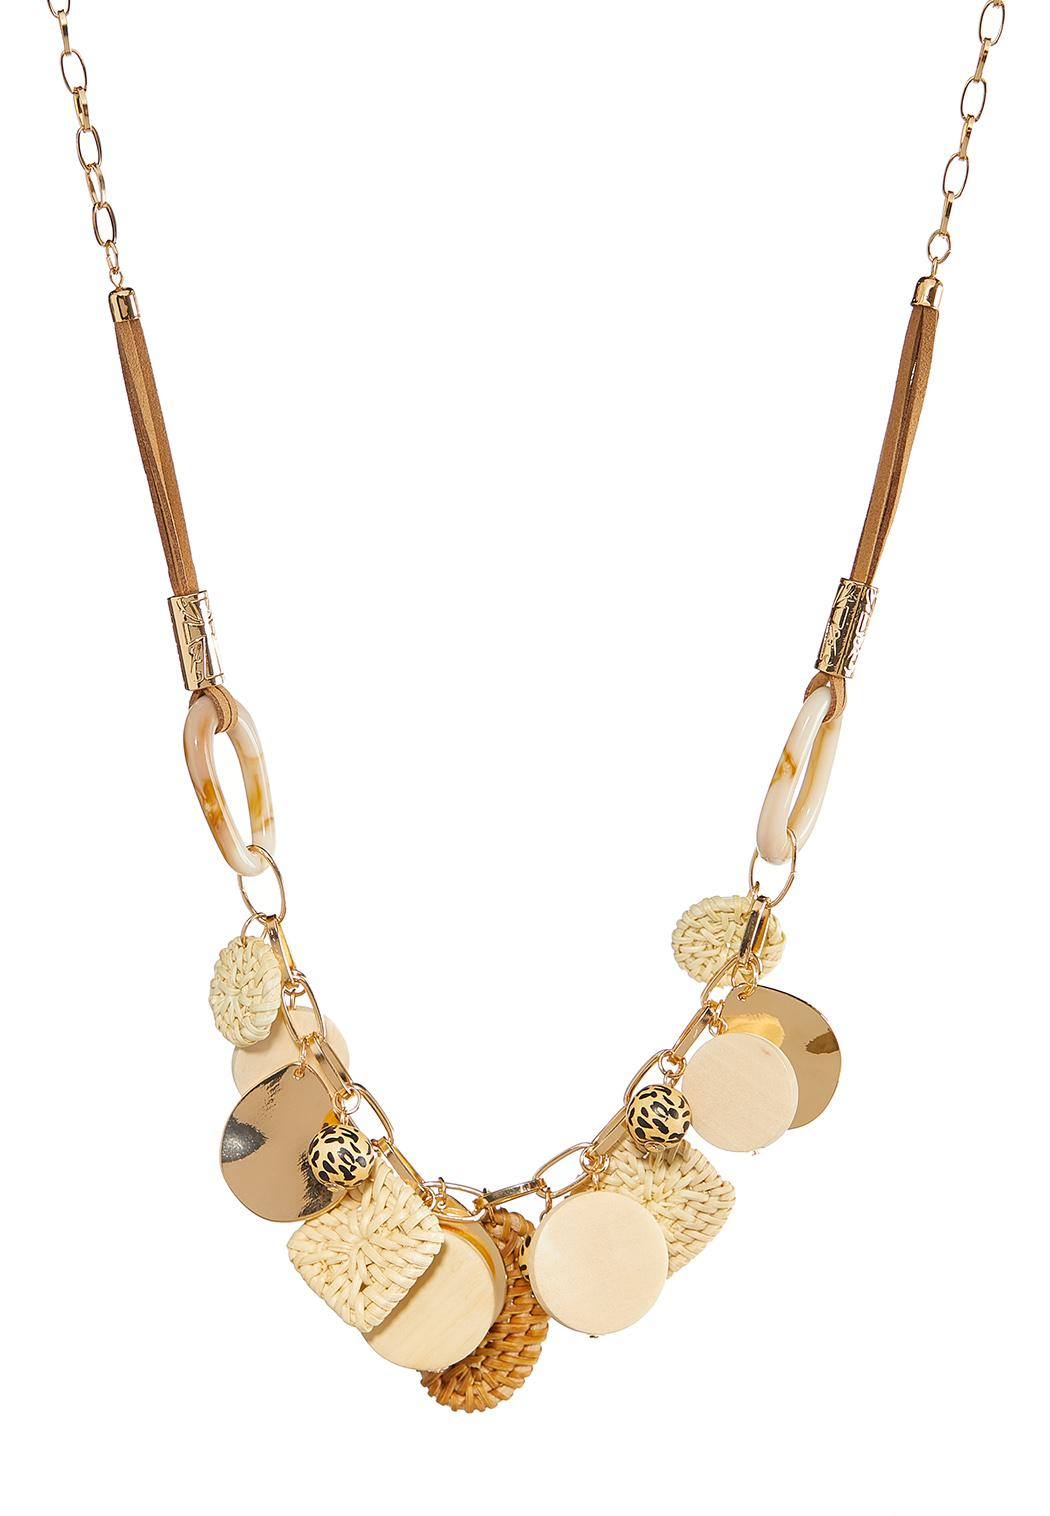 Assorted Charm Chain Necklace